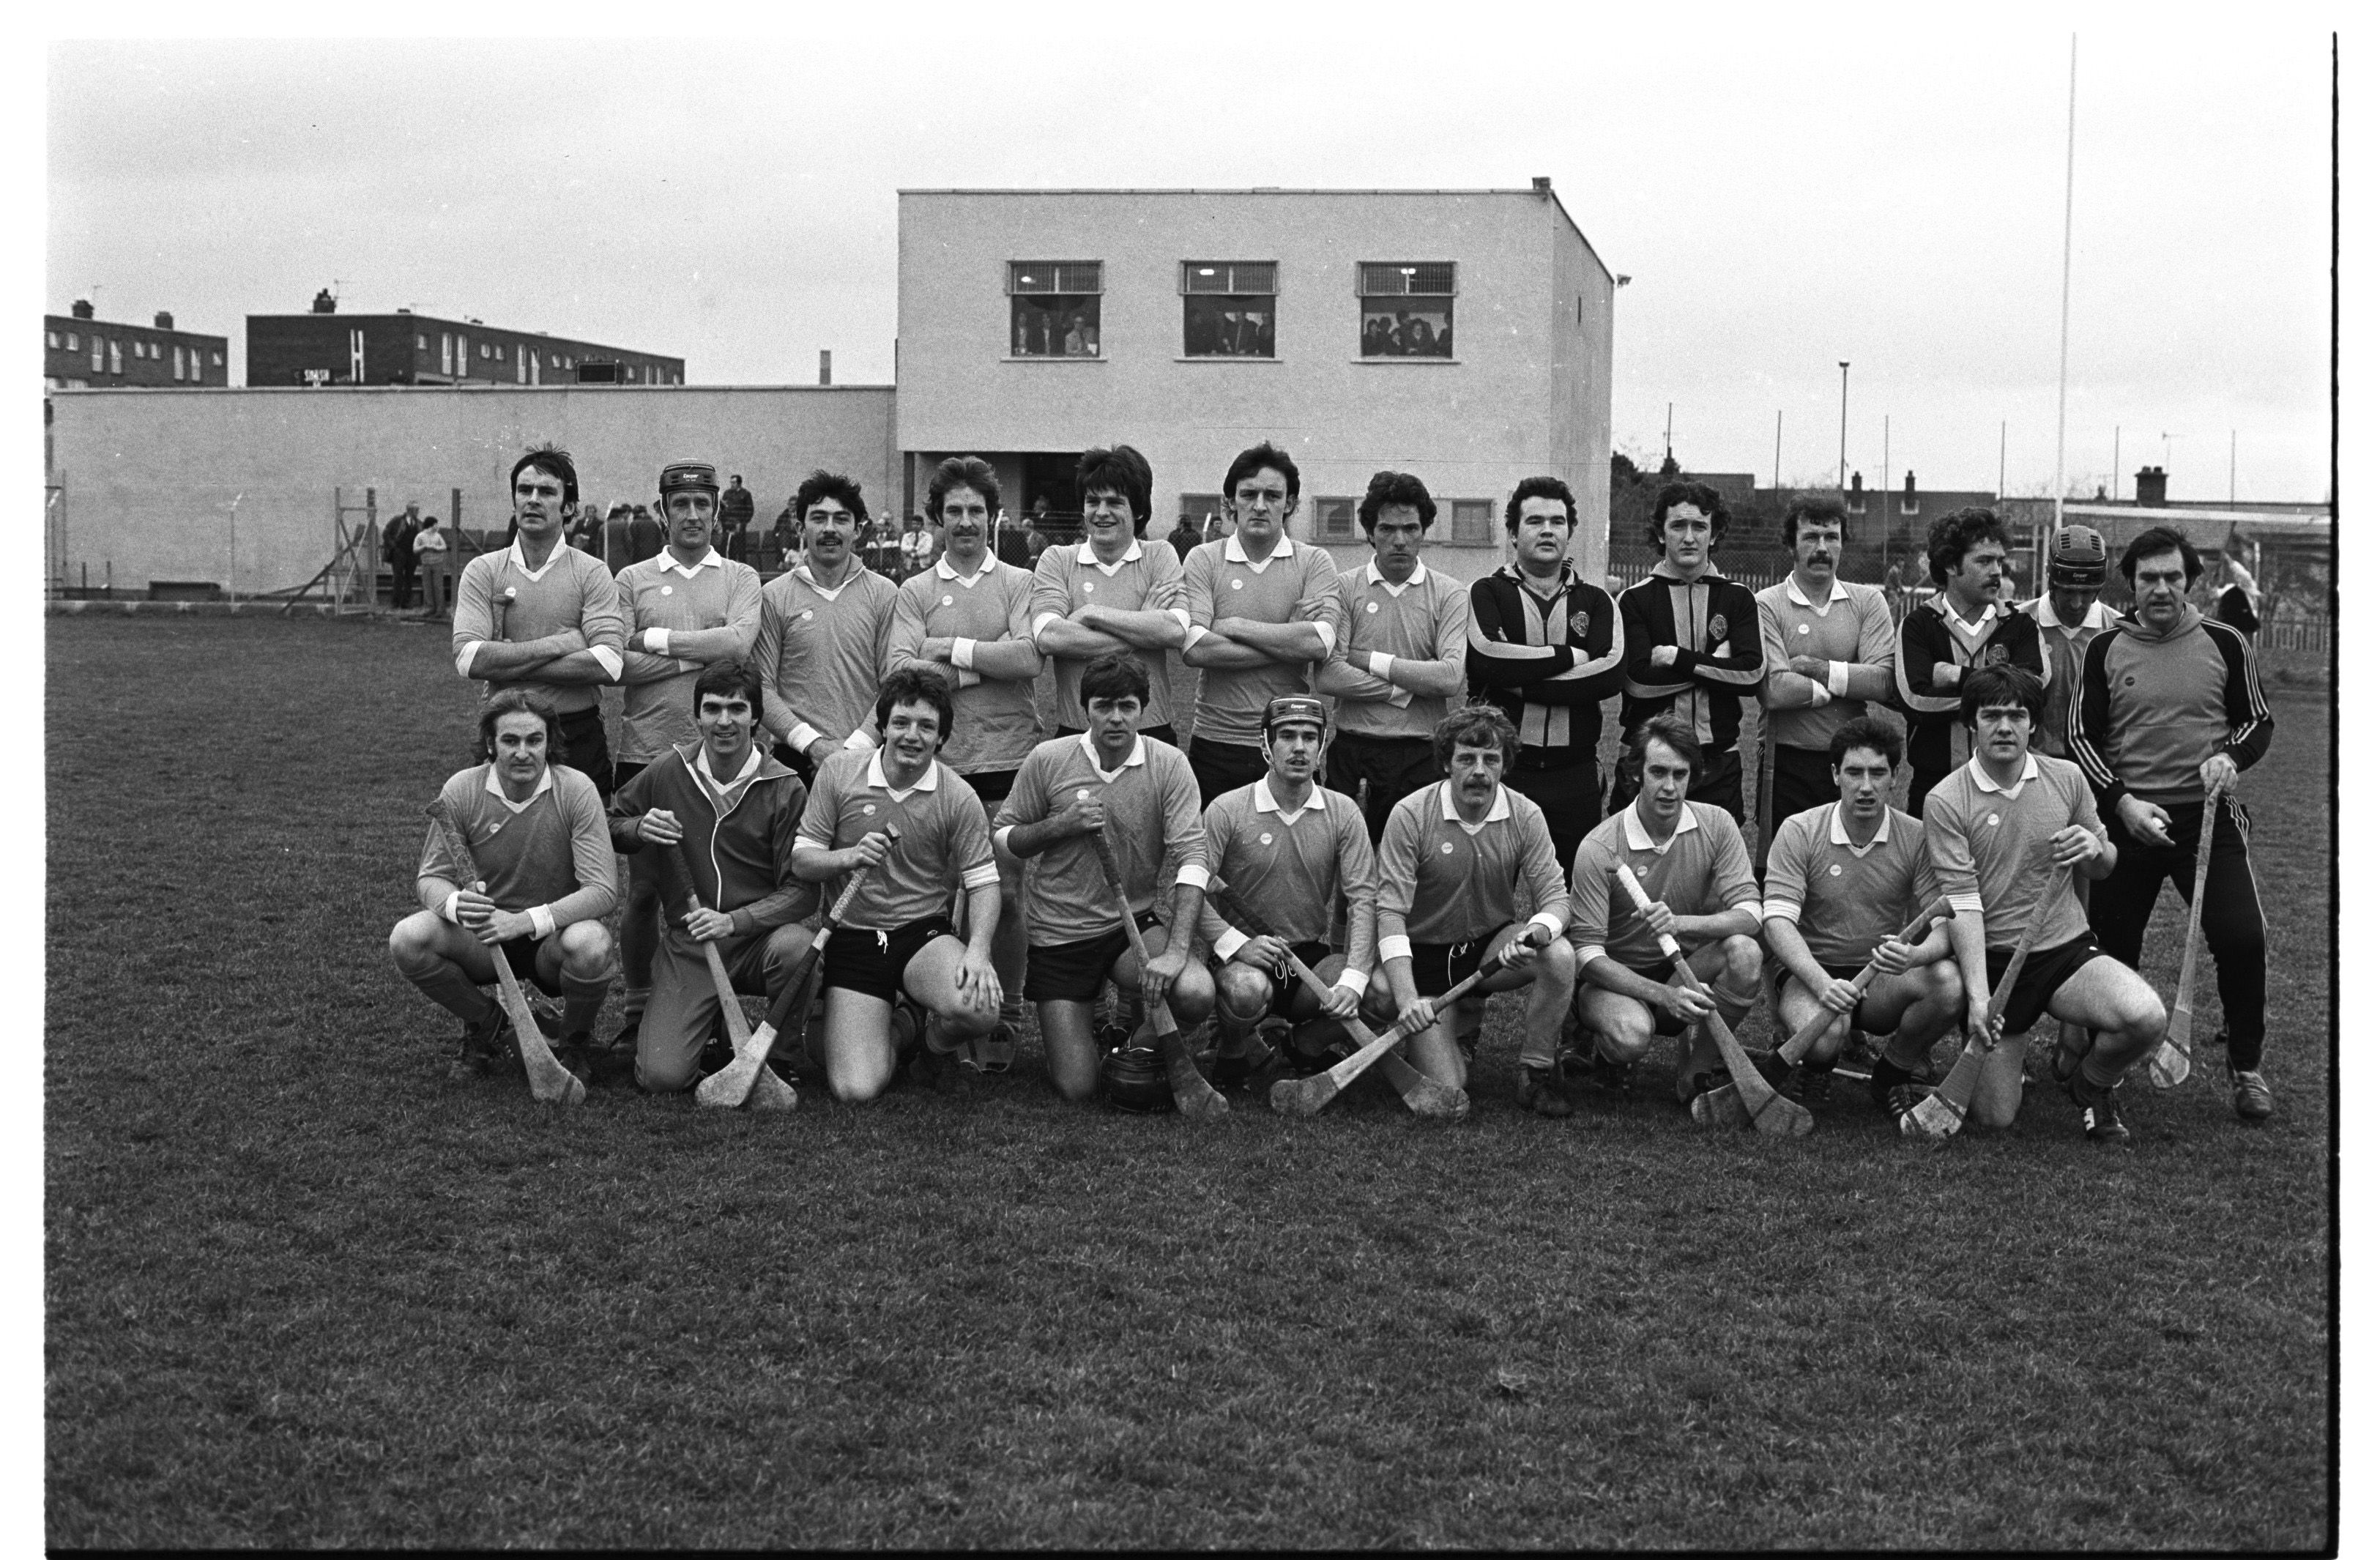 SAFFRONS: Kilkenny beat this Antrim team at the opening of O'Donovan Rossa's new complex and pitch at Shaws Road